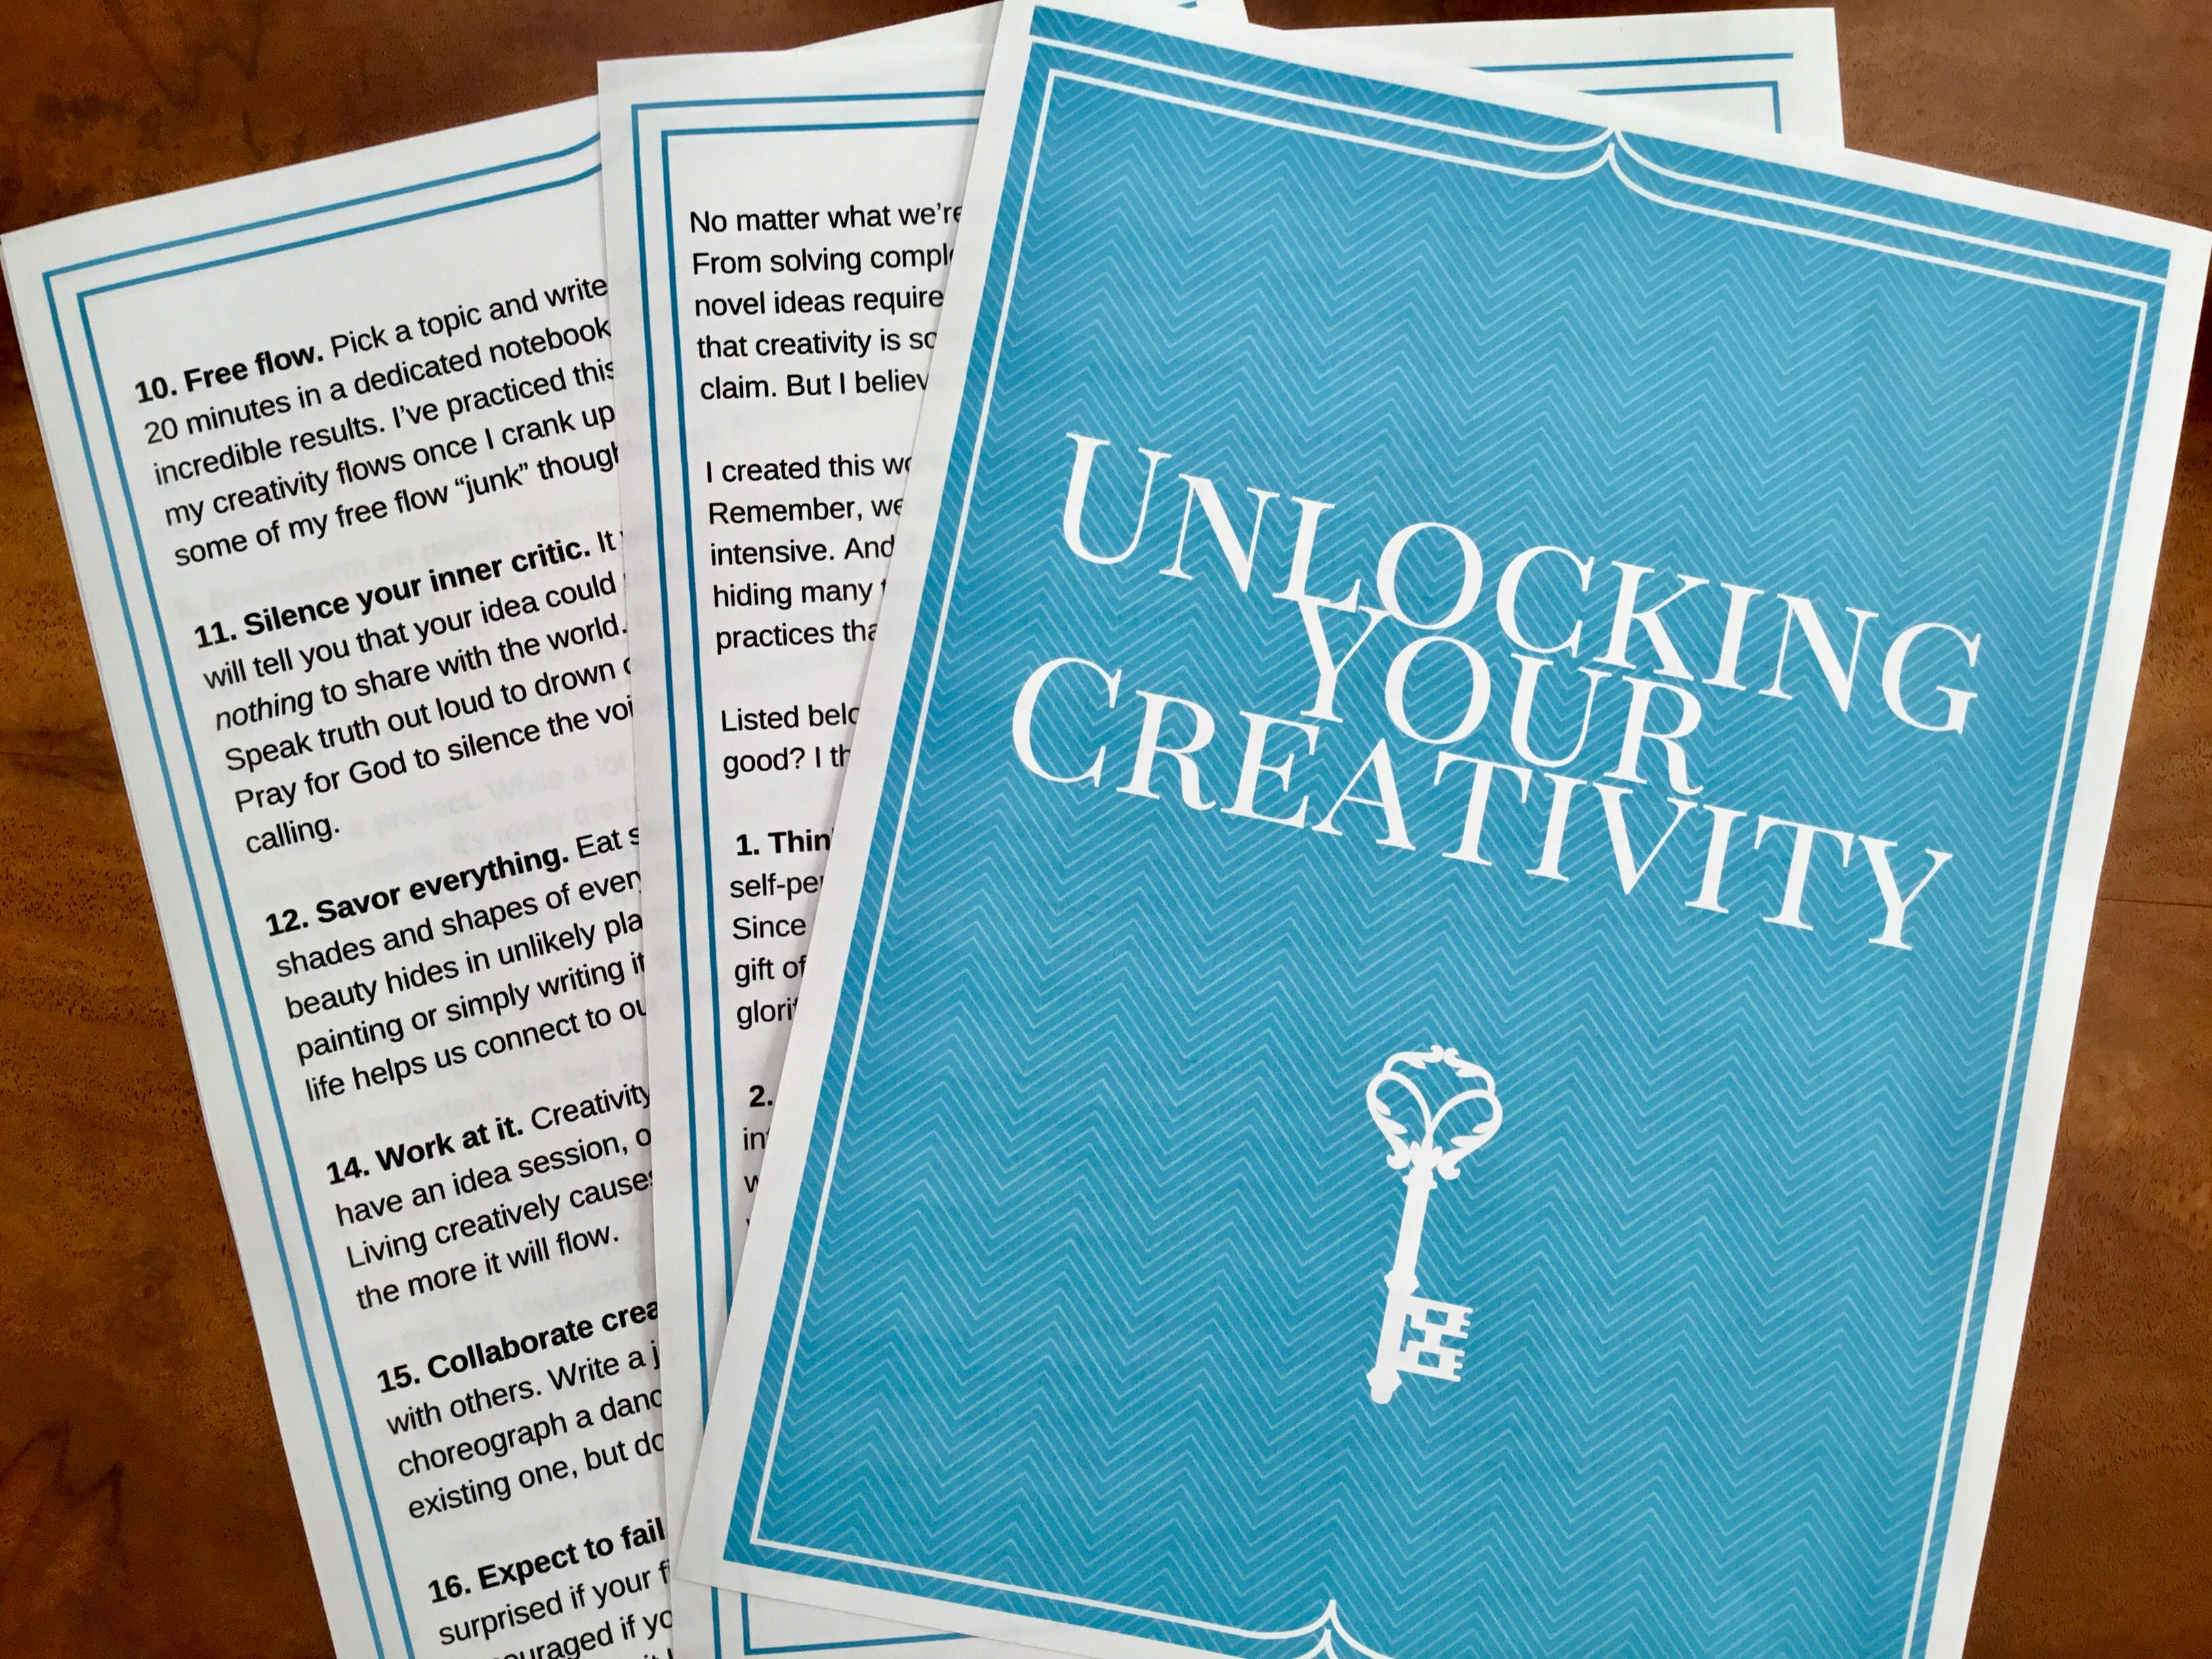 5 Reasons Why YOU Are Creative - May Patterson